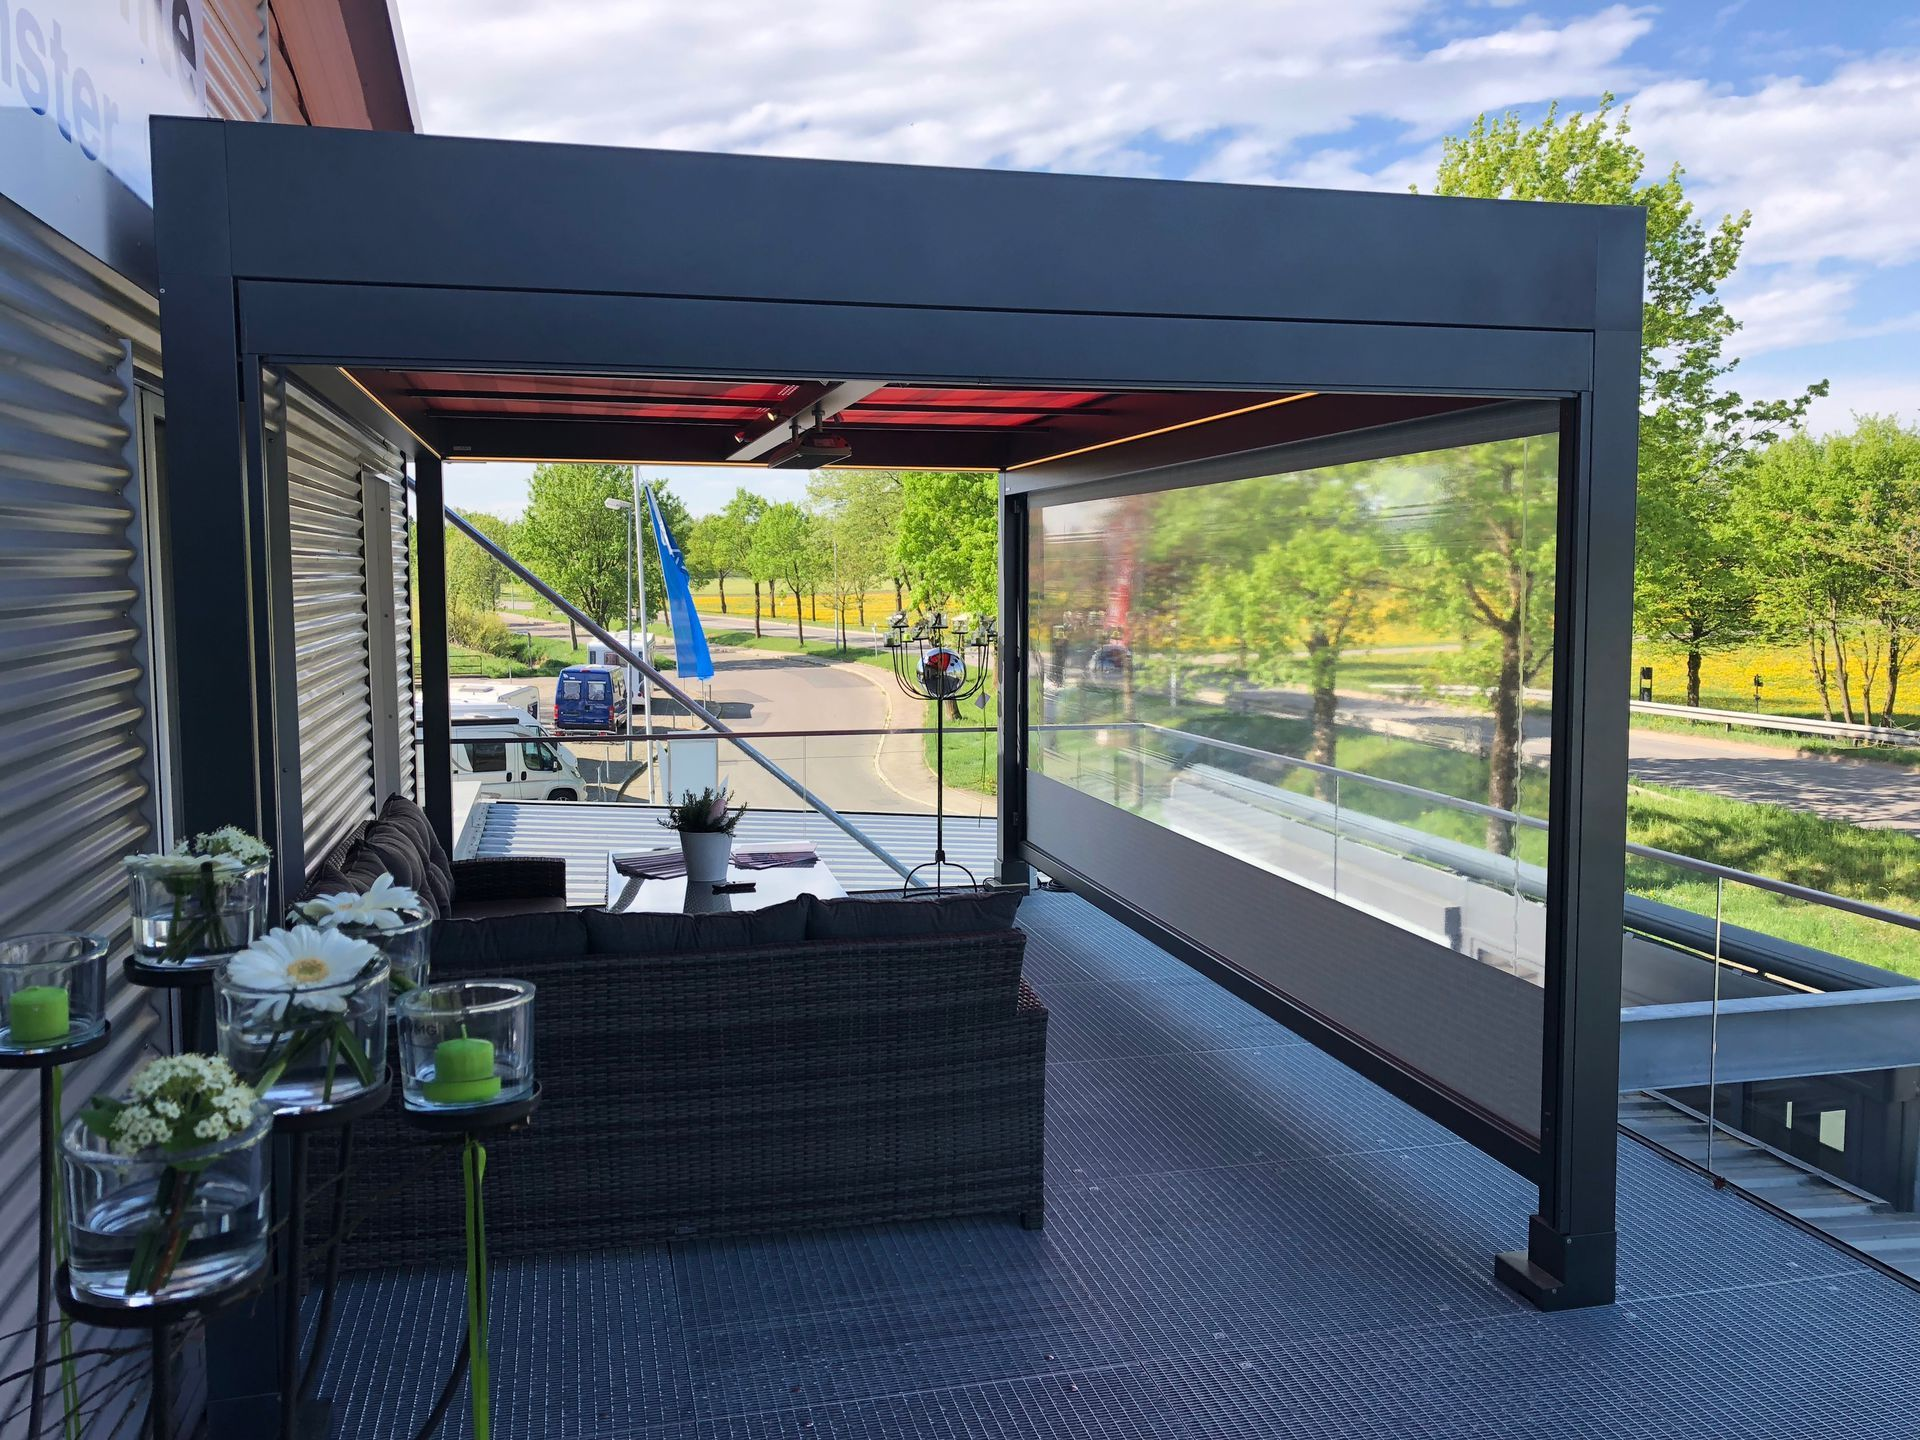 Freestanding Awnings Open Space Outdoor Living Awning